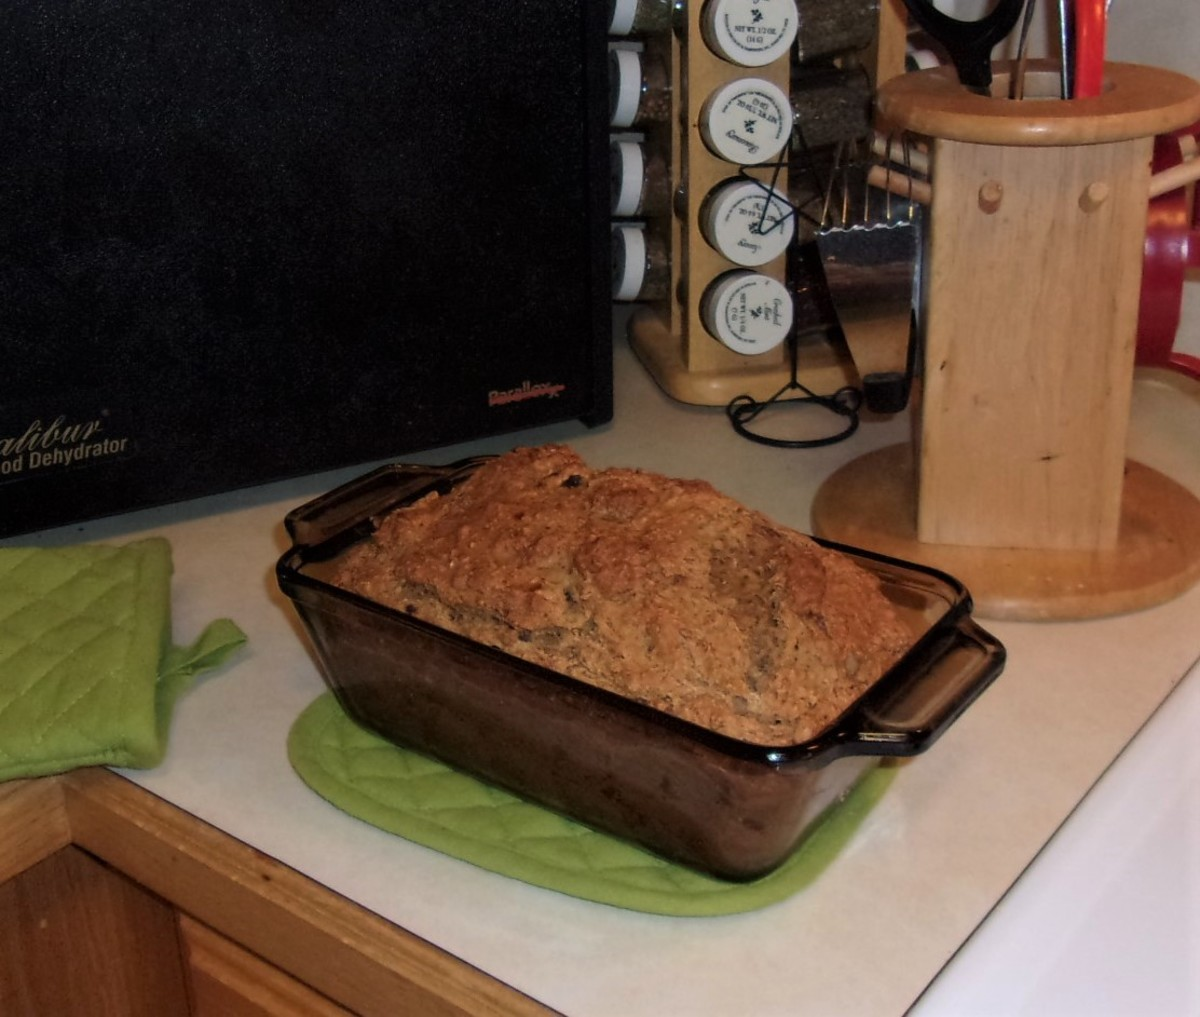 Sugar-free banana bread.